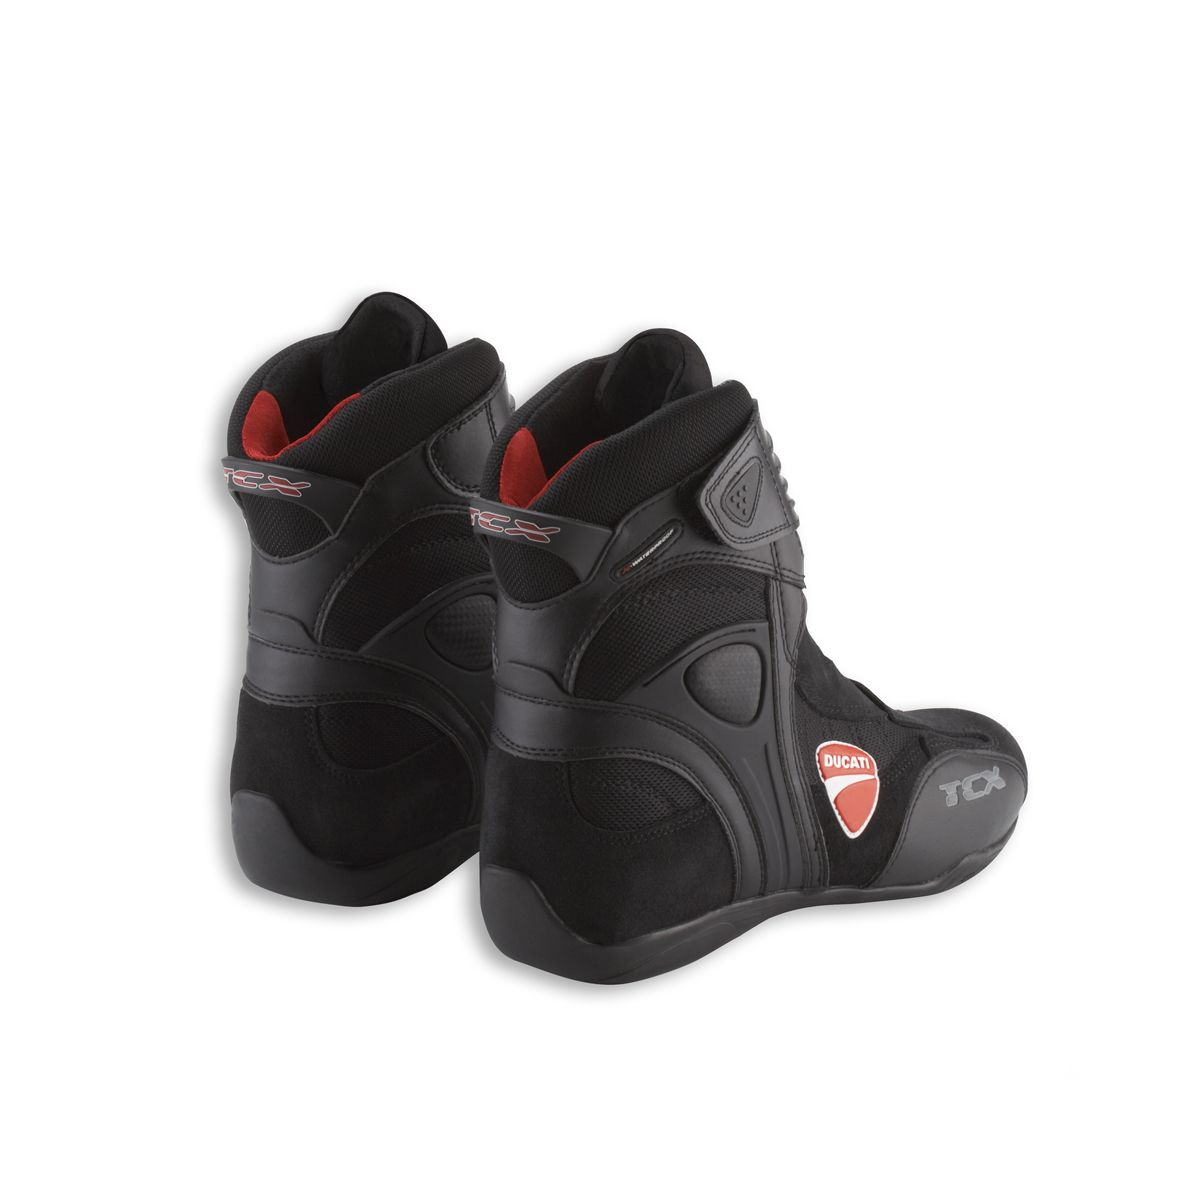 Ducati Company Boots 13 TCX motorcycle